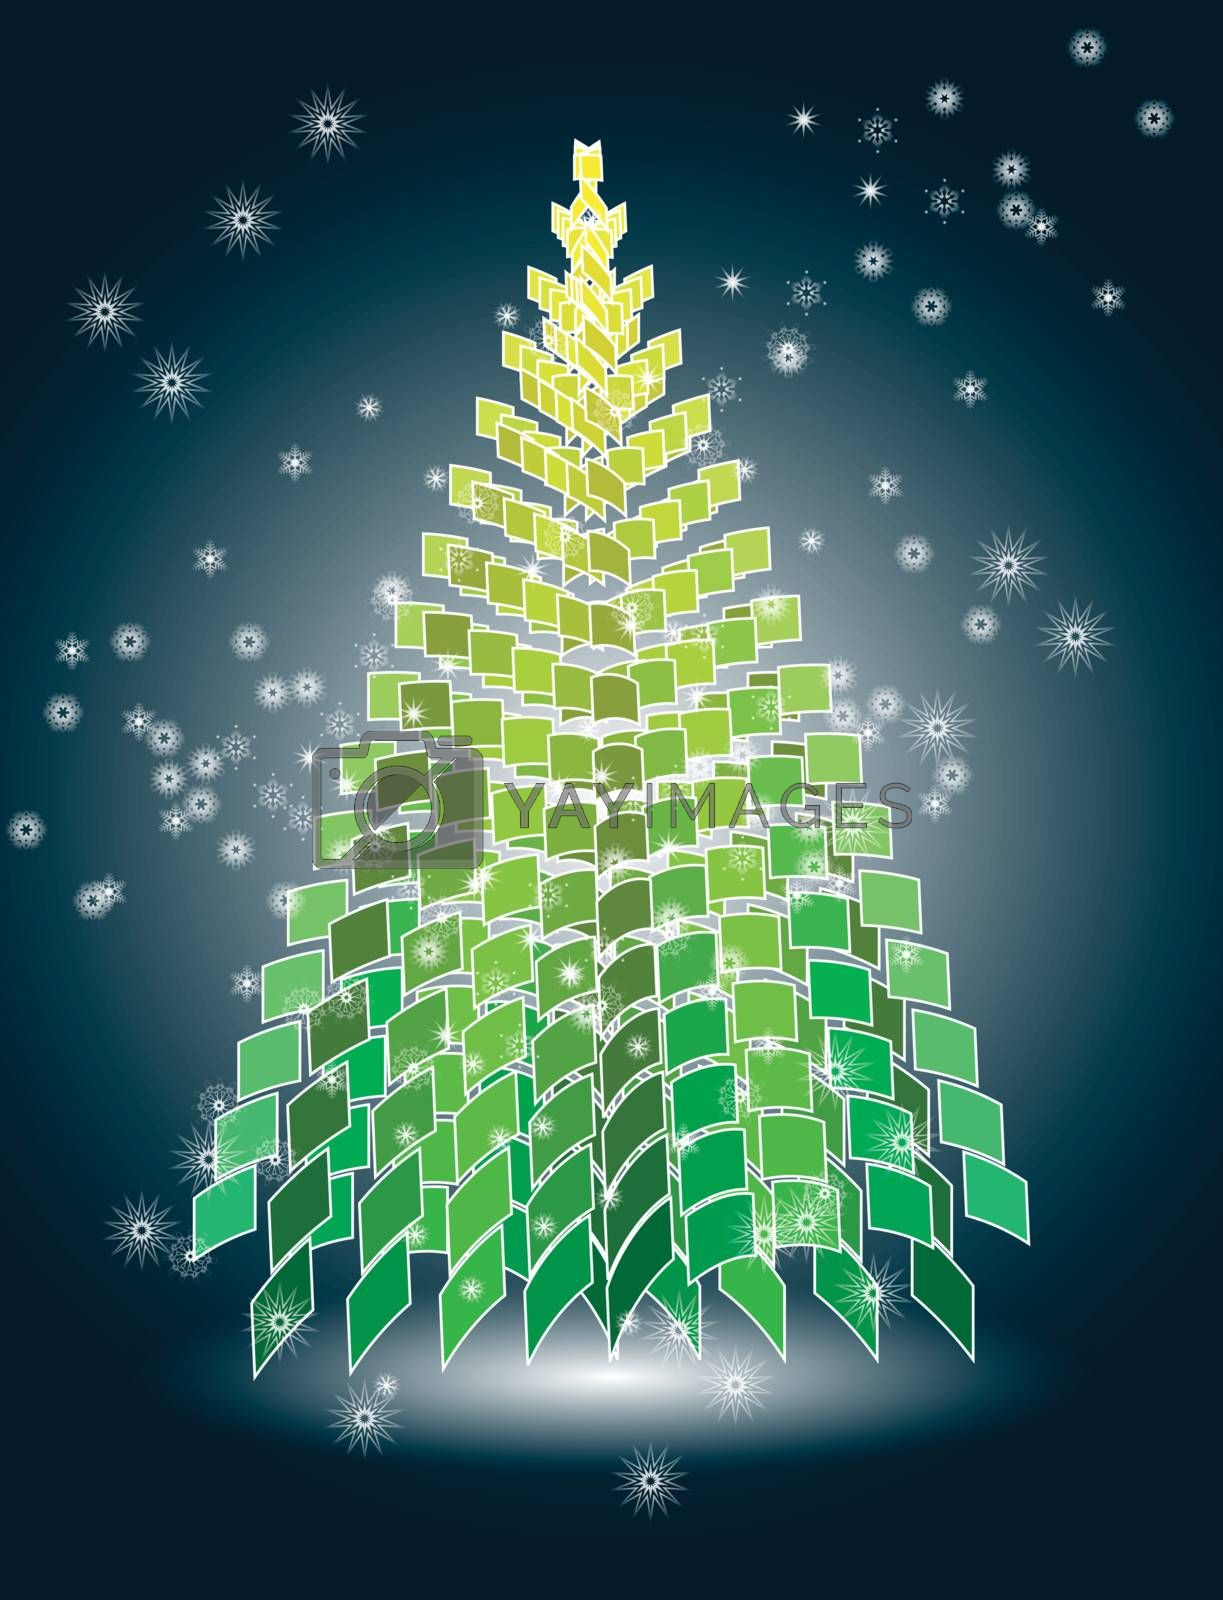 Royalty free image of Christmas tree on snowy winter background by nirots